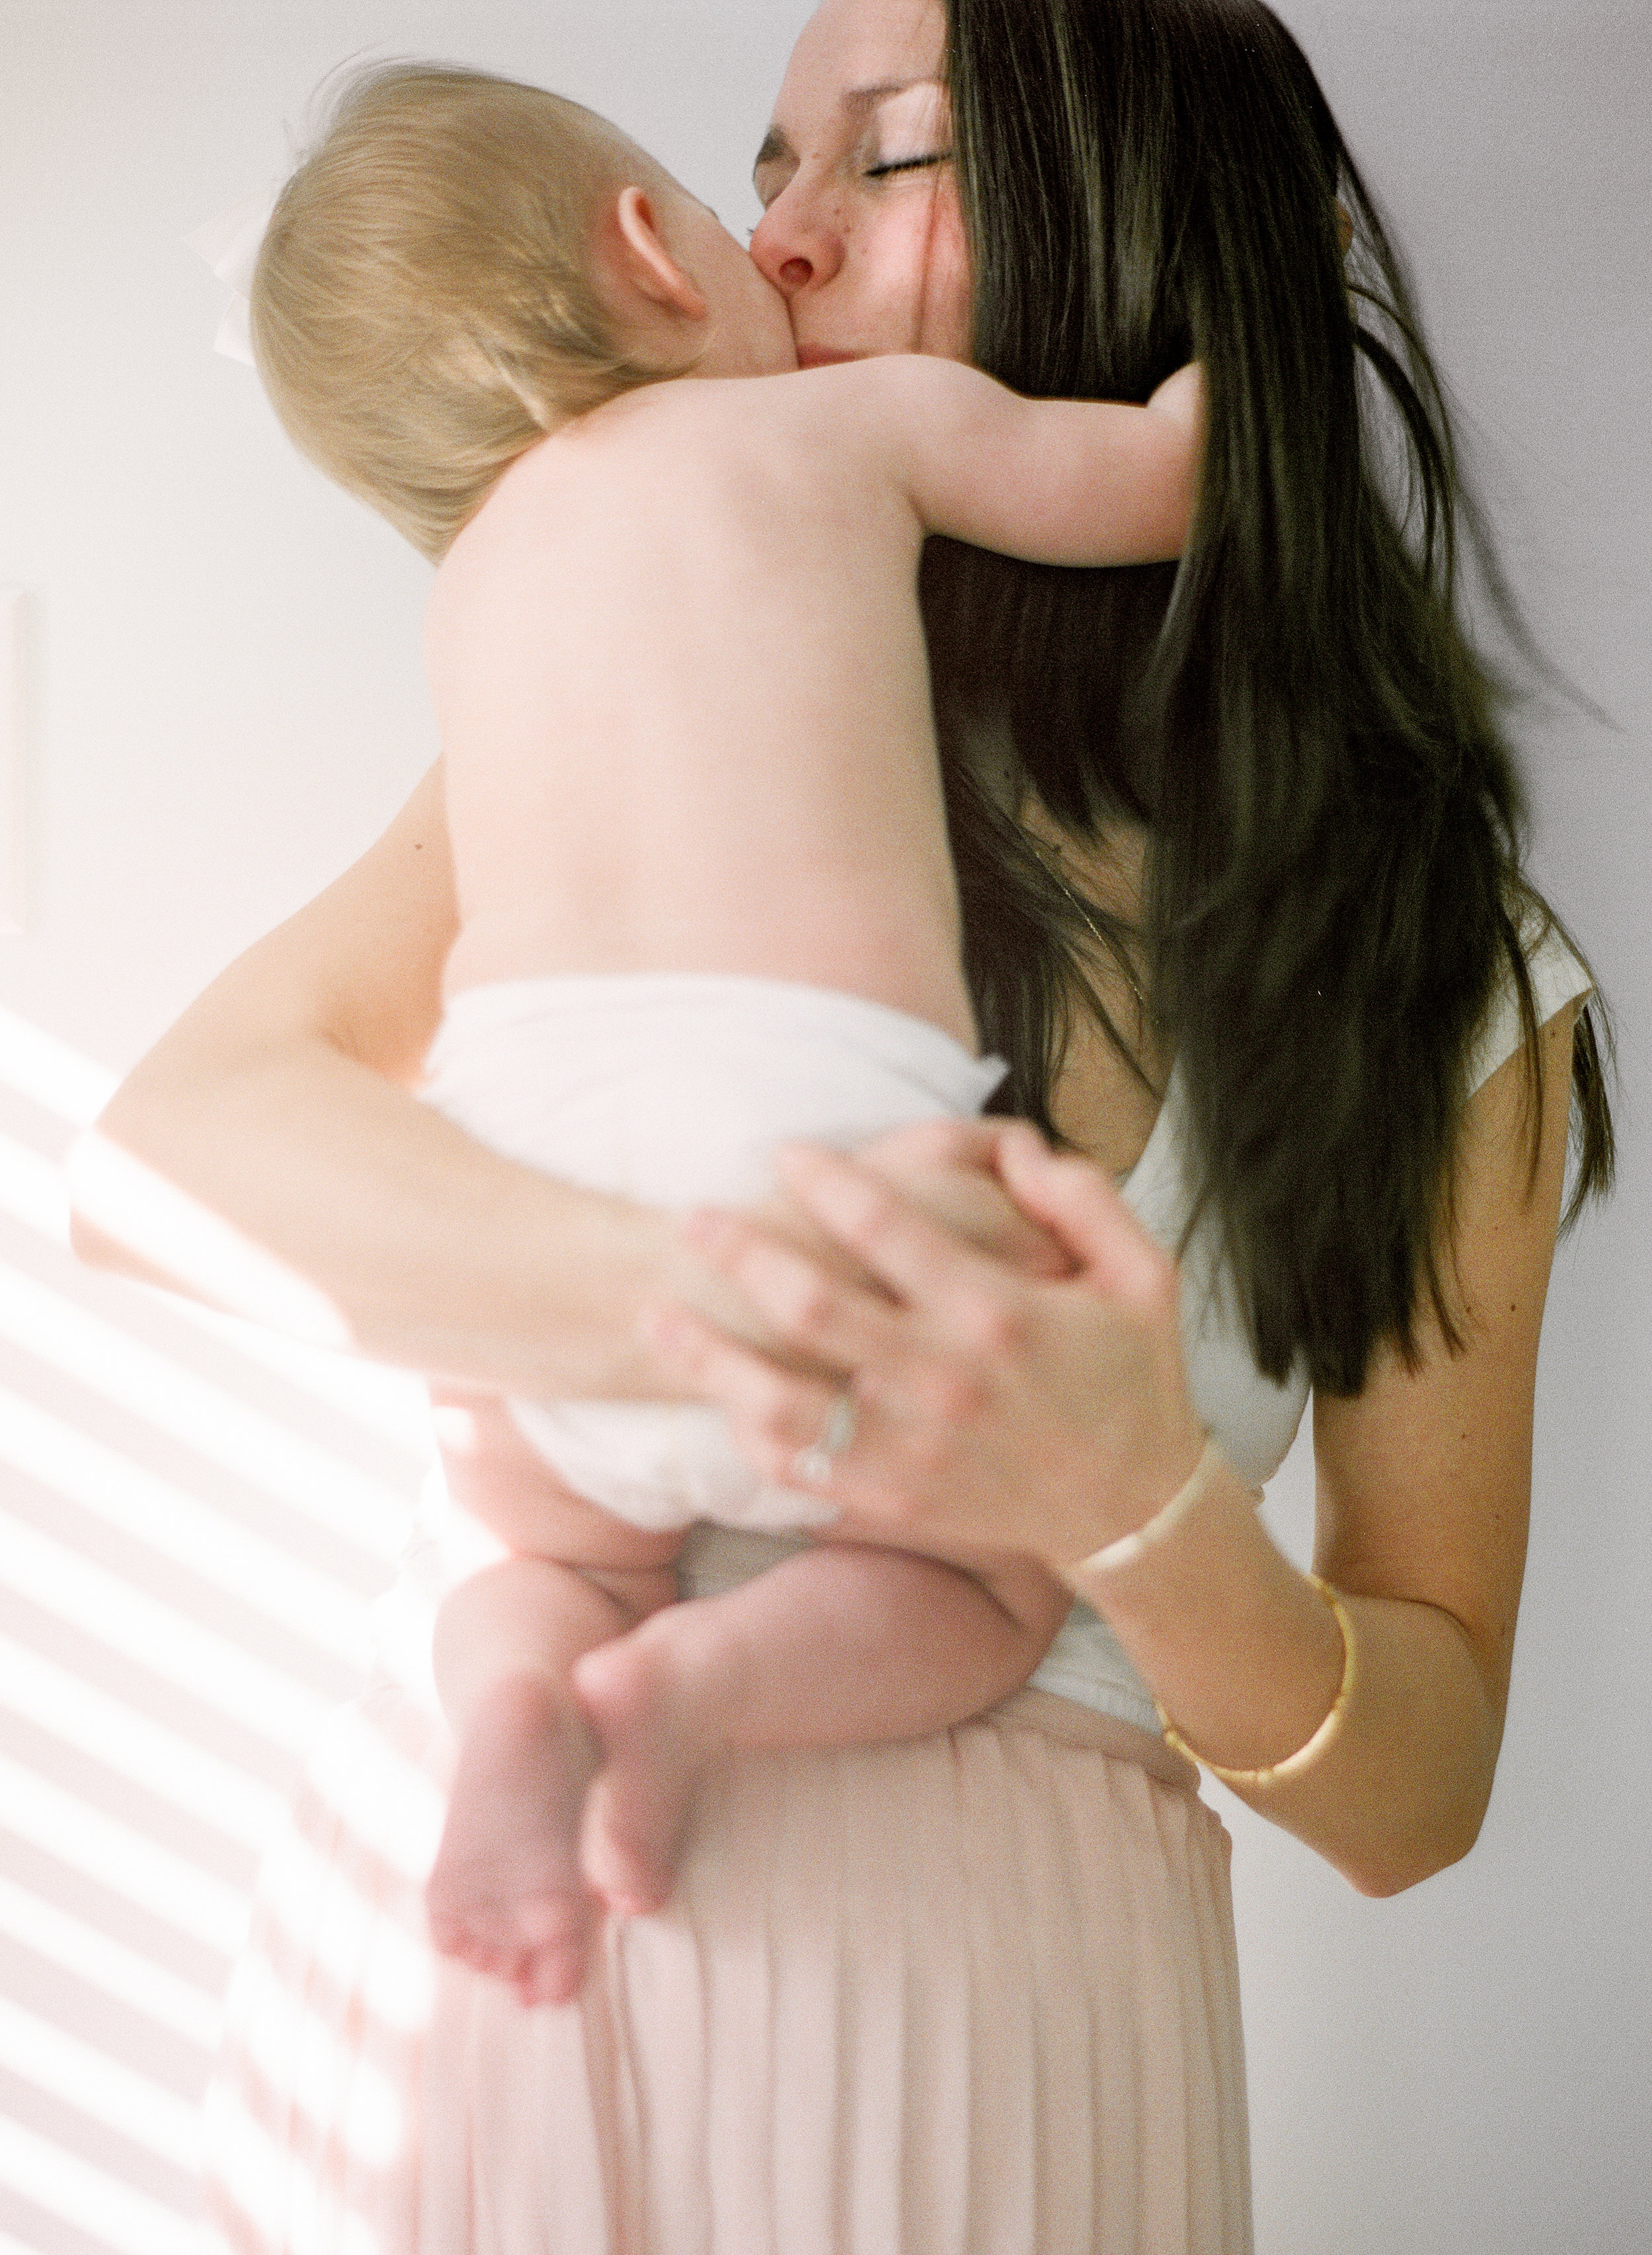 raleigh-film-photographer-motherhood-family-creative-baby-pictures